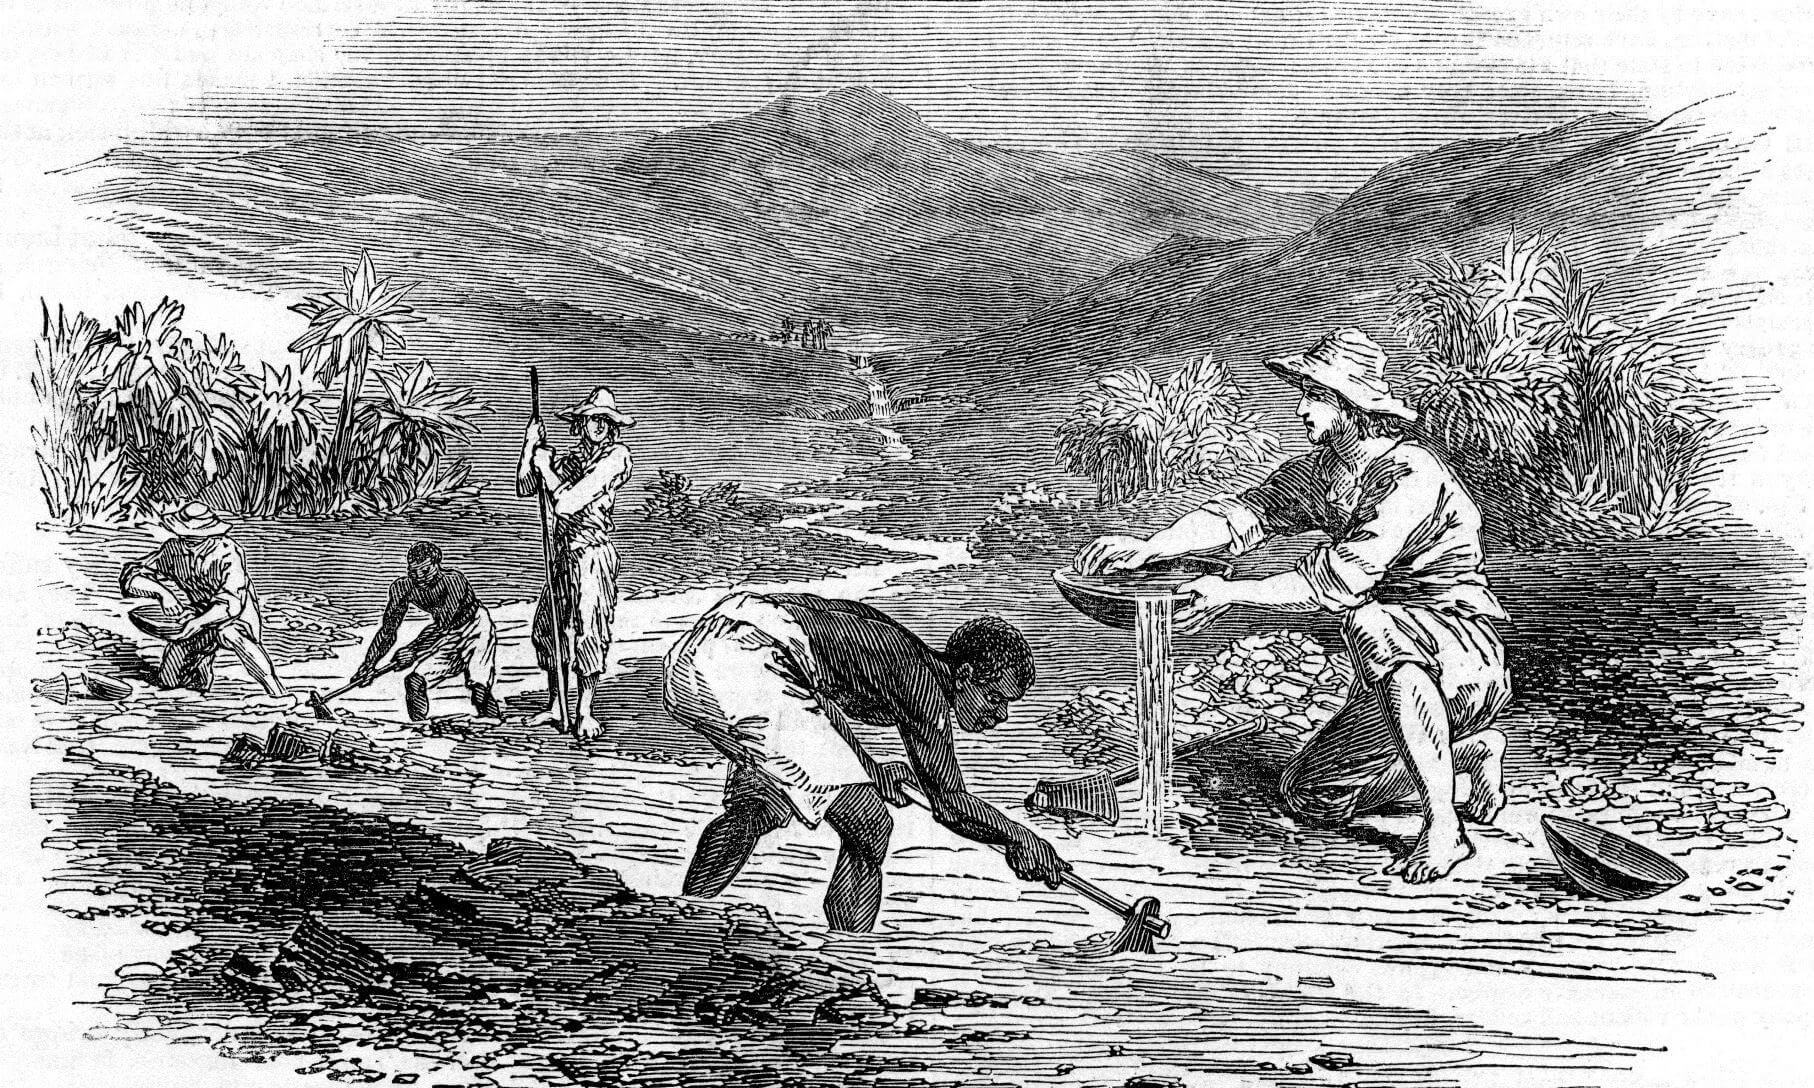 Prospectors and slaves panning for gold in river